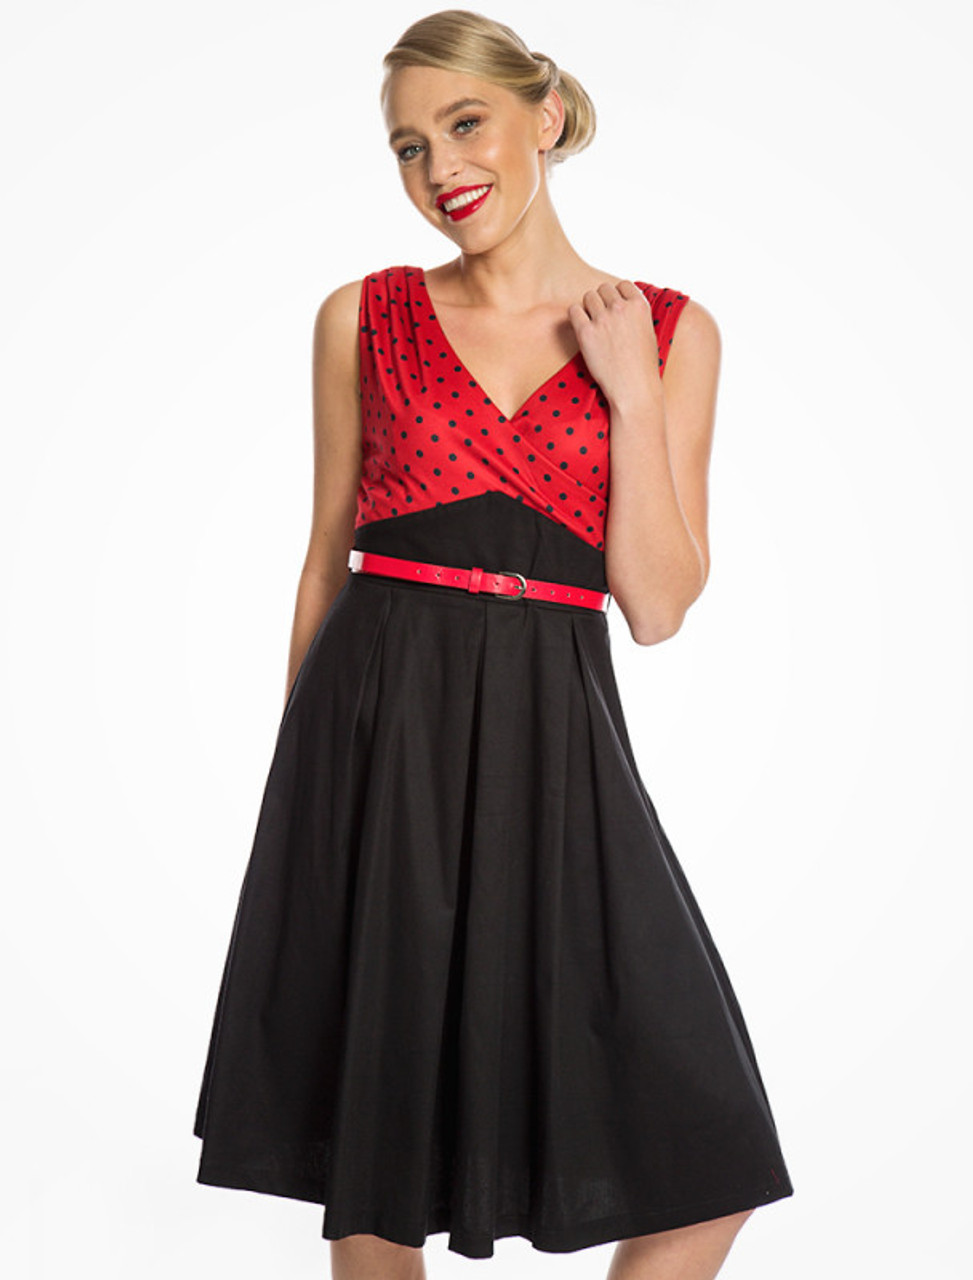 2dc27c6a0539 Lindy Bop Valerie Red and Black Polka Dot Swing Dress - Suicide Glam ...